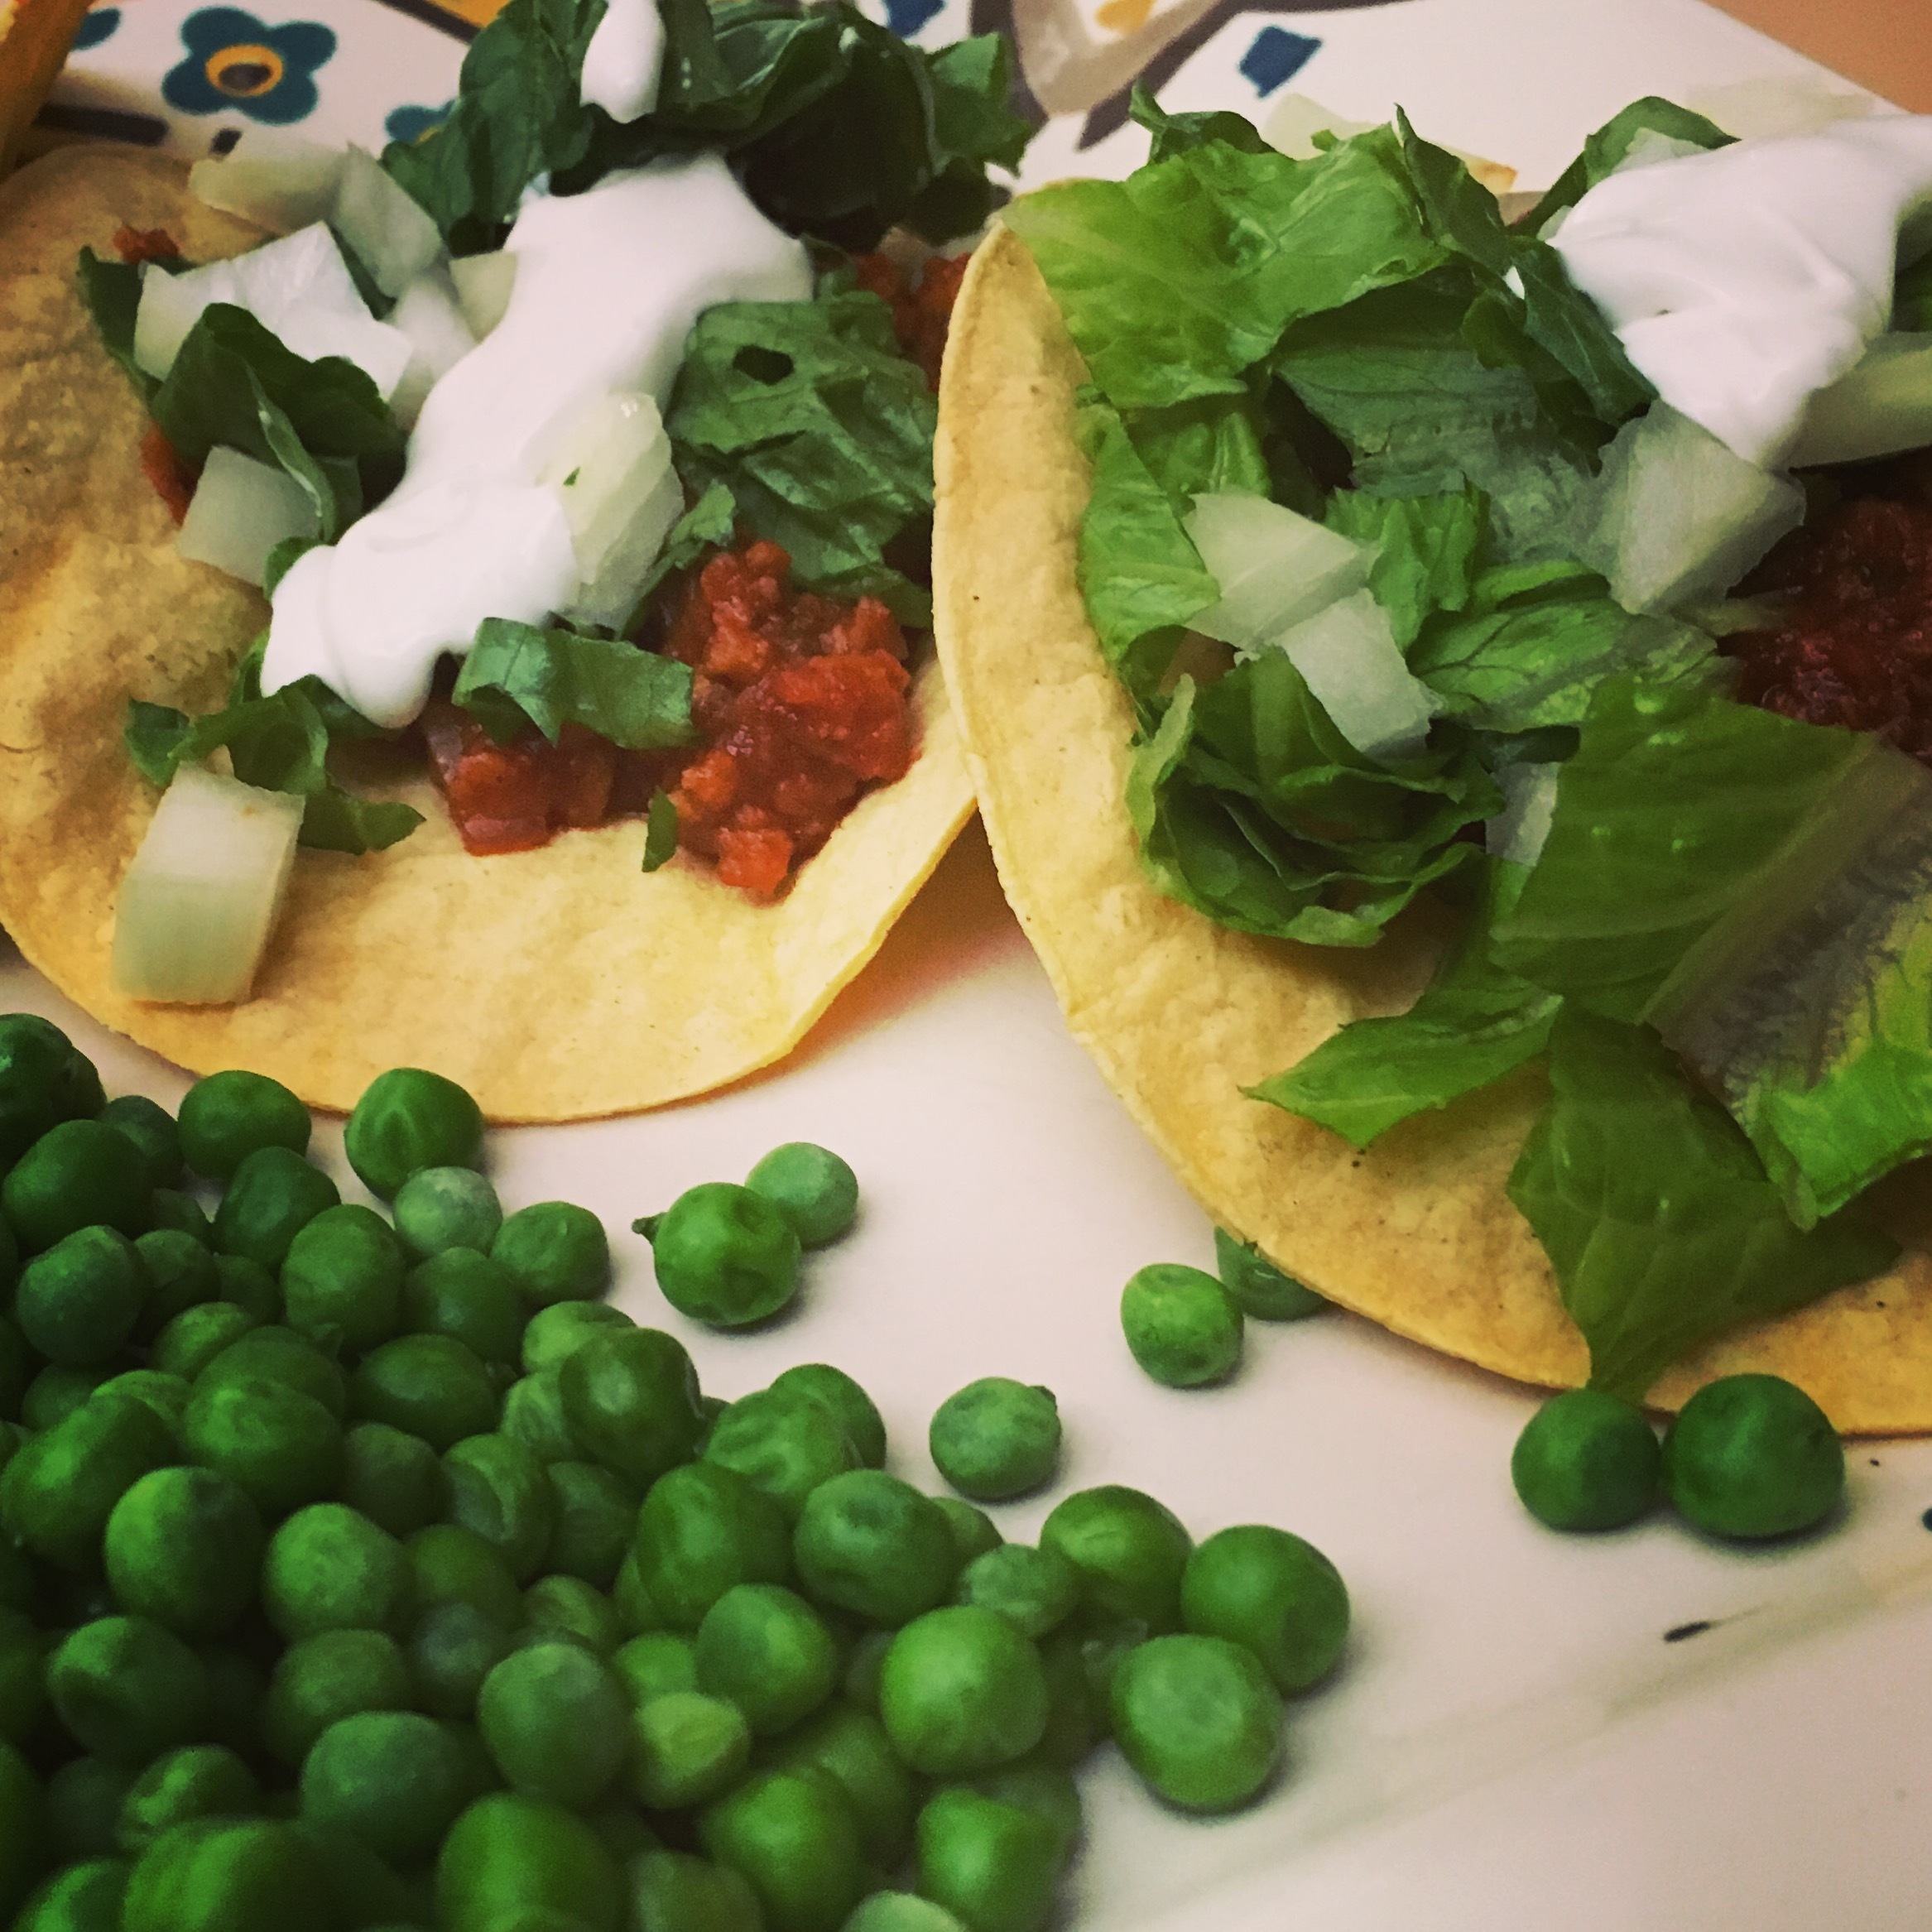 Sloppy Joe Tacos and more real world vegan meals